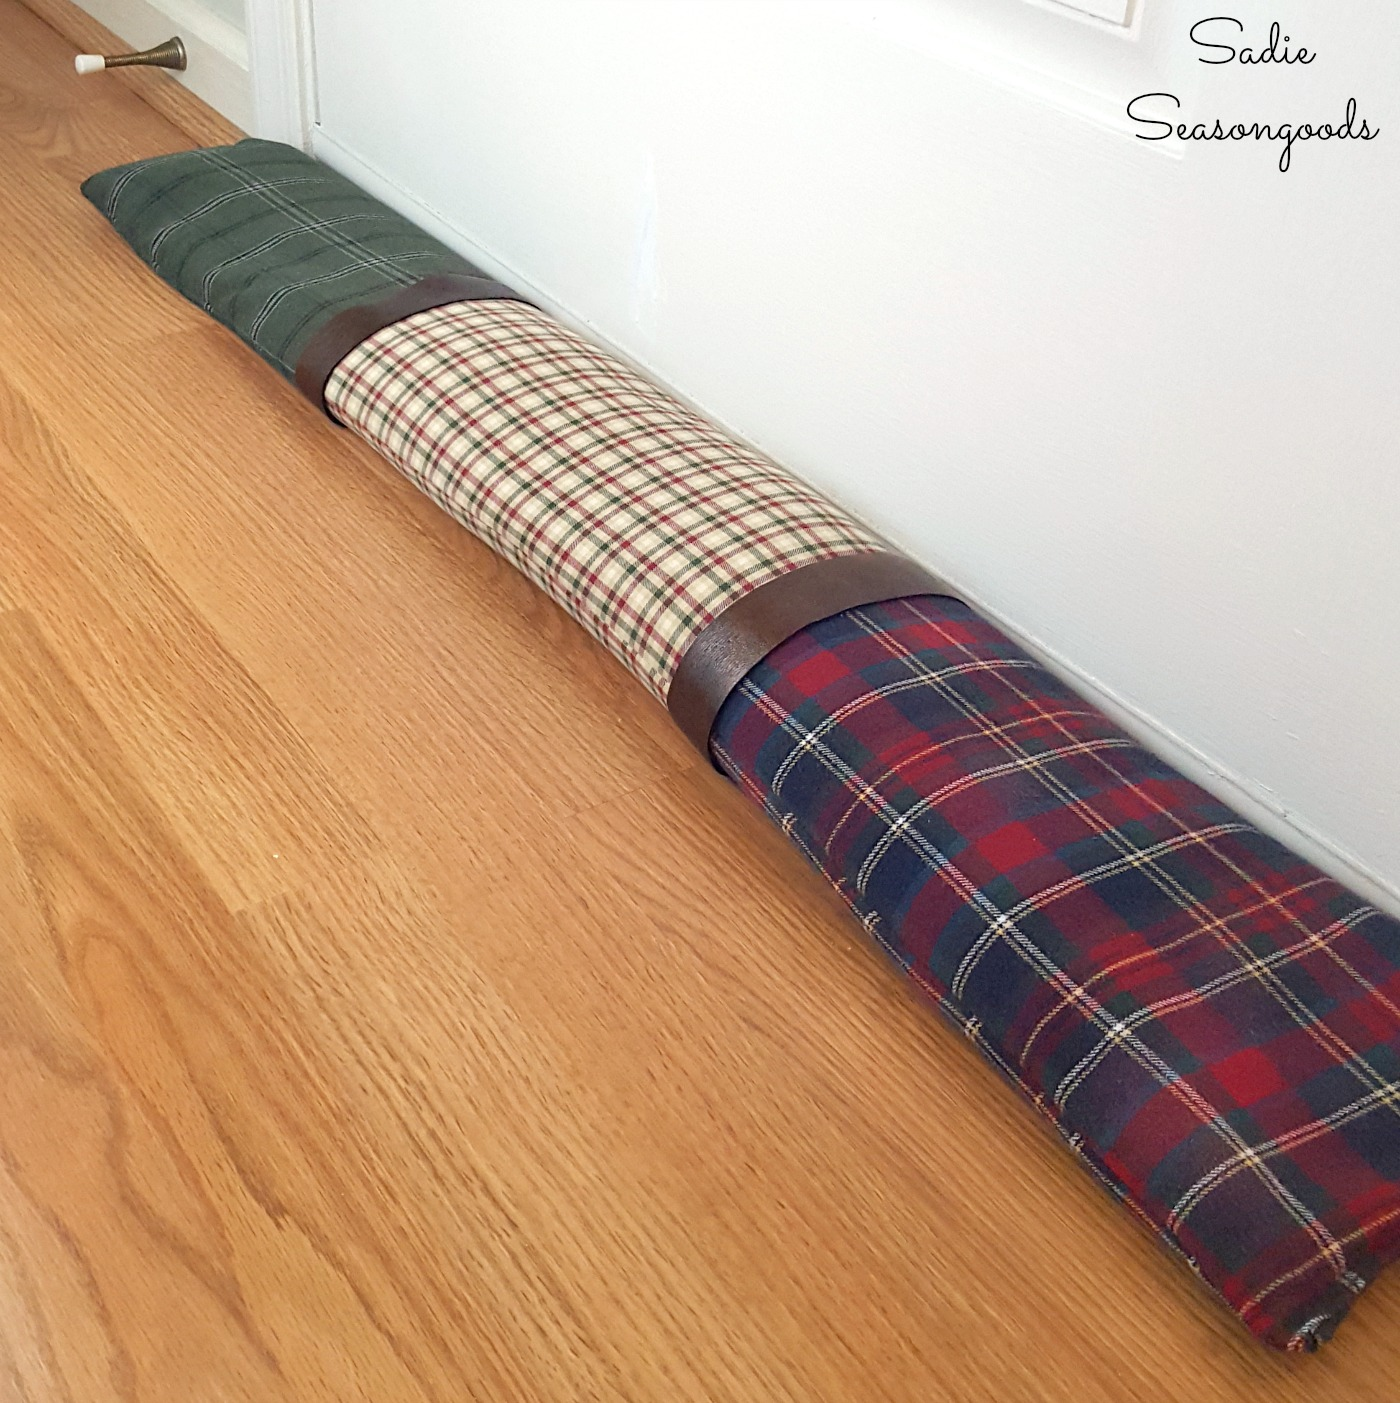 Draft Stopper from Flannel Shirts for Rustic Decor